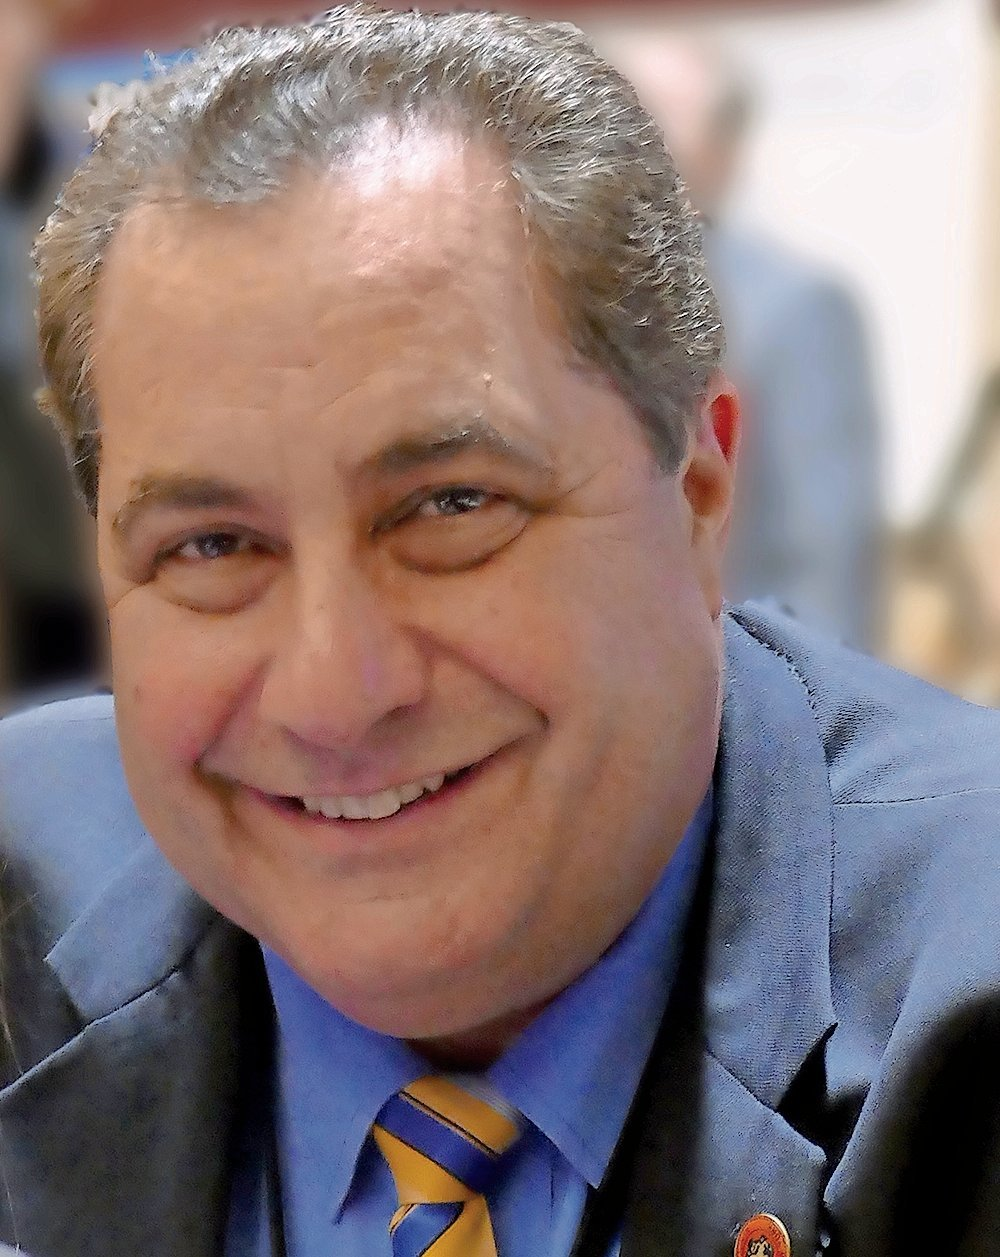 Board of Education Trustee Michael D'Ambrosio